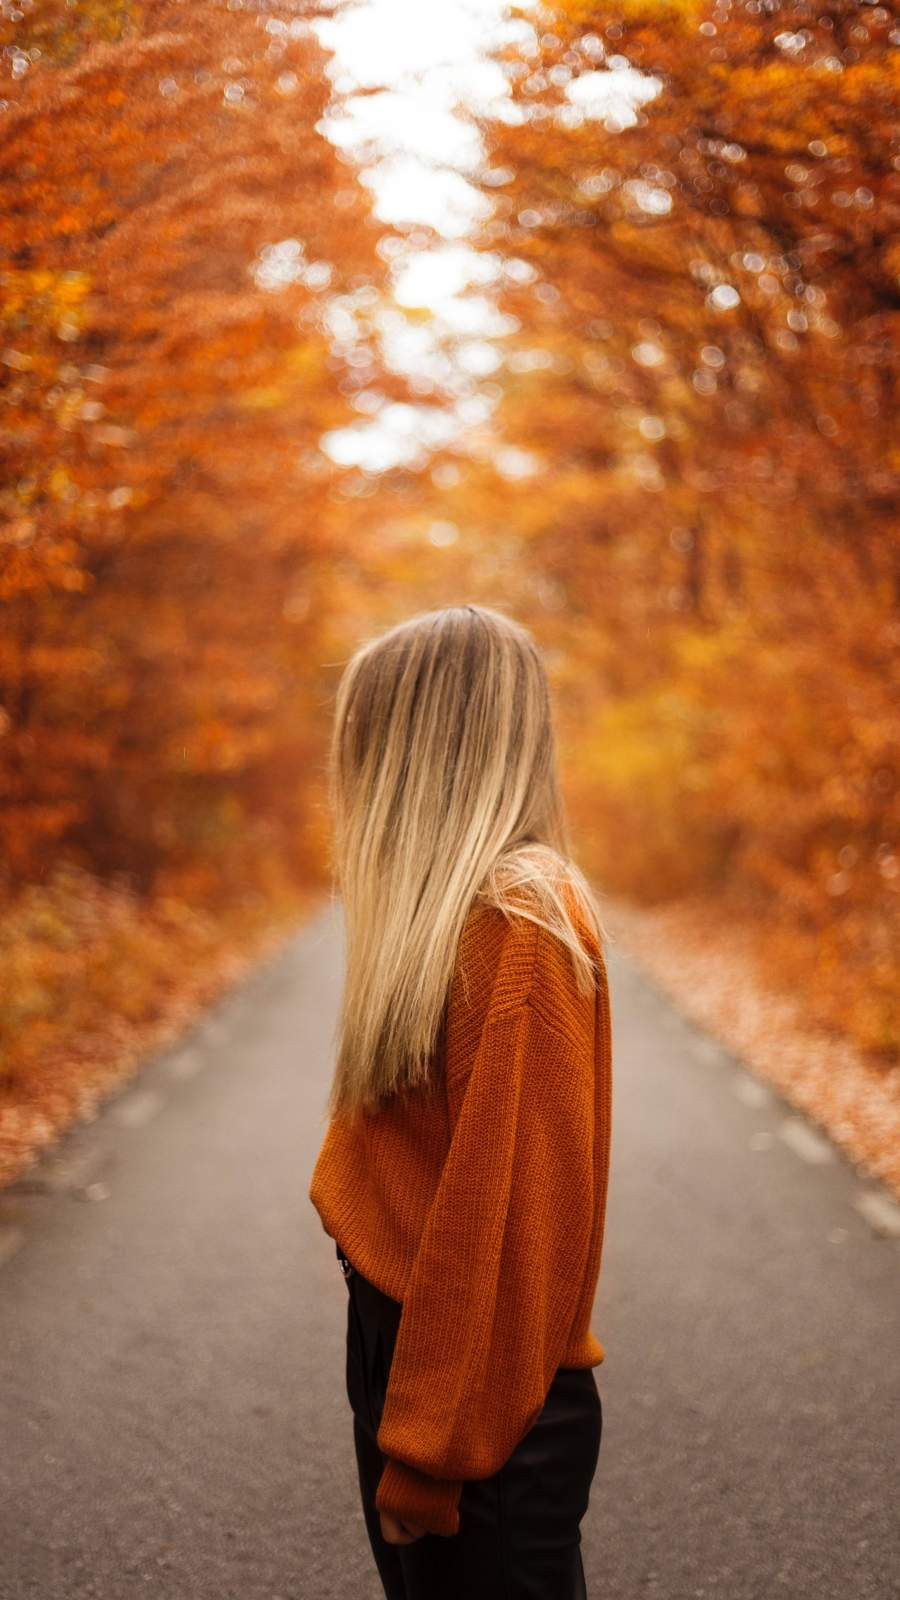 Autumn Girl iPhone Wallpaper